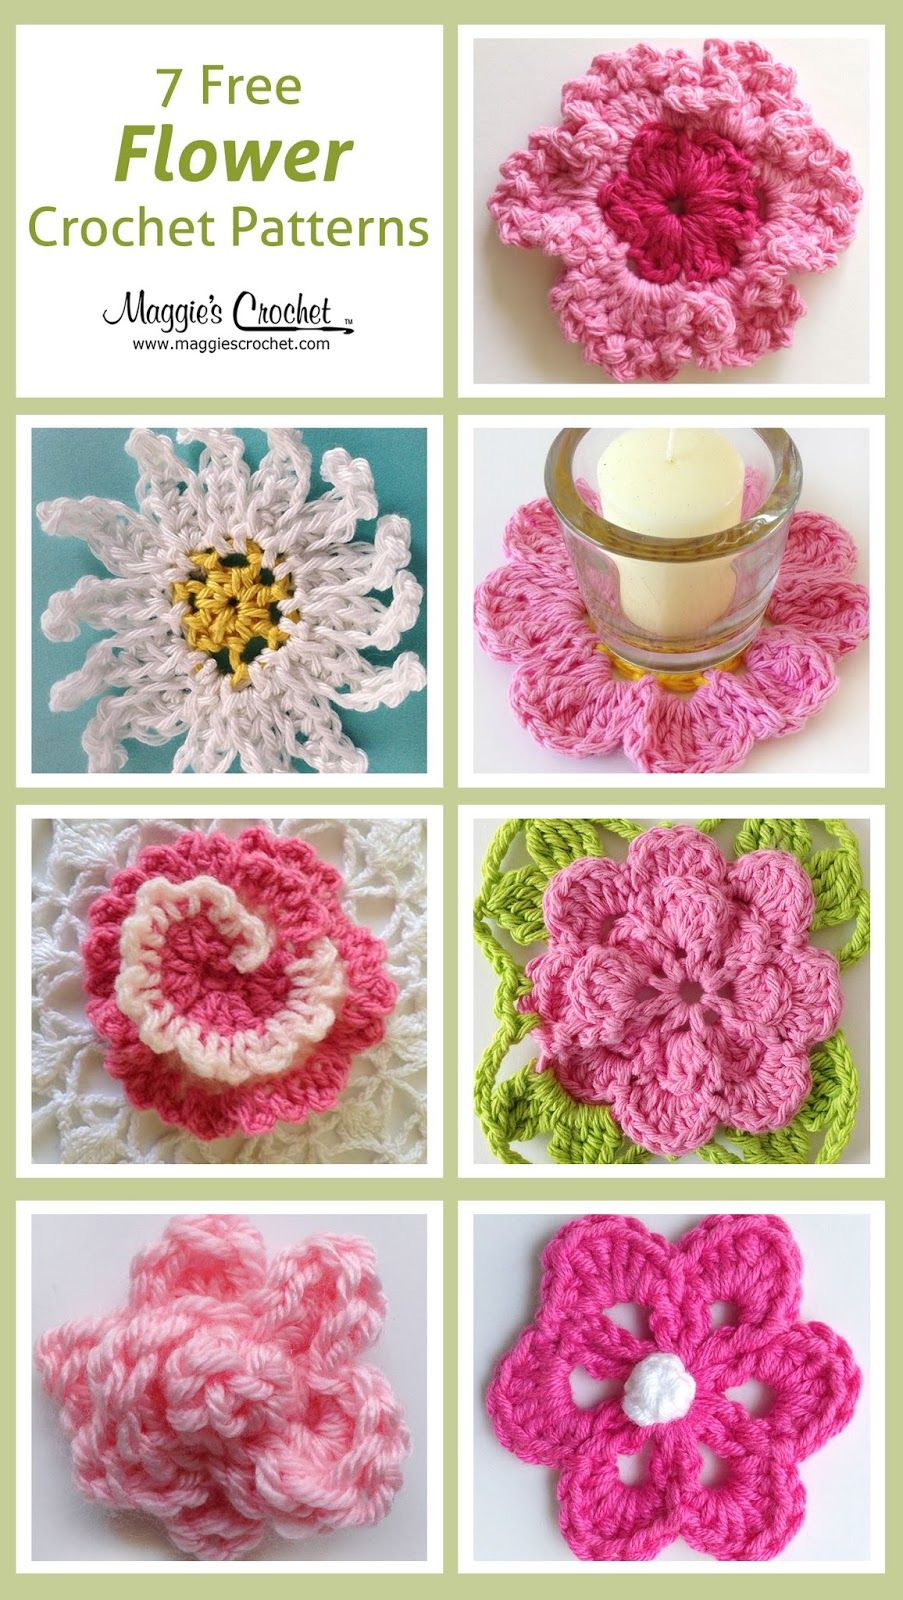 Free patterns httpmaggiescrochetblogseven free flower its time for more free flower patterns from maggies crochet all of these projects are an easy skill level and can be used for a number of things bankloansurffo Gallery